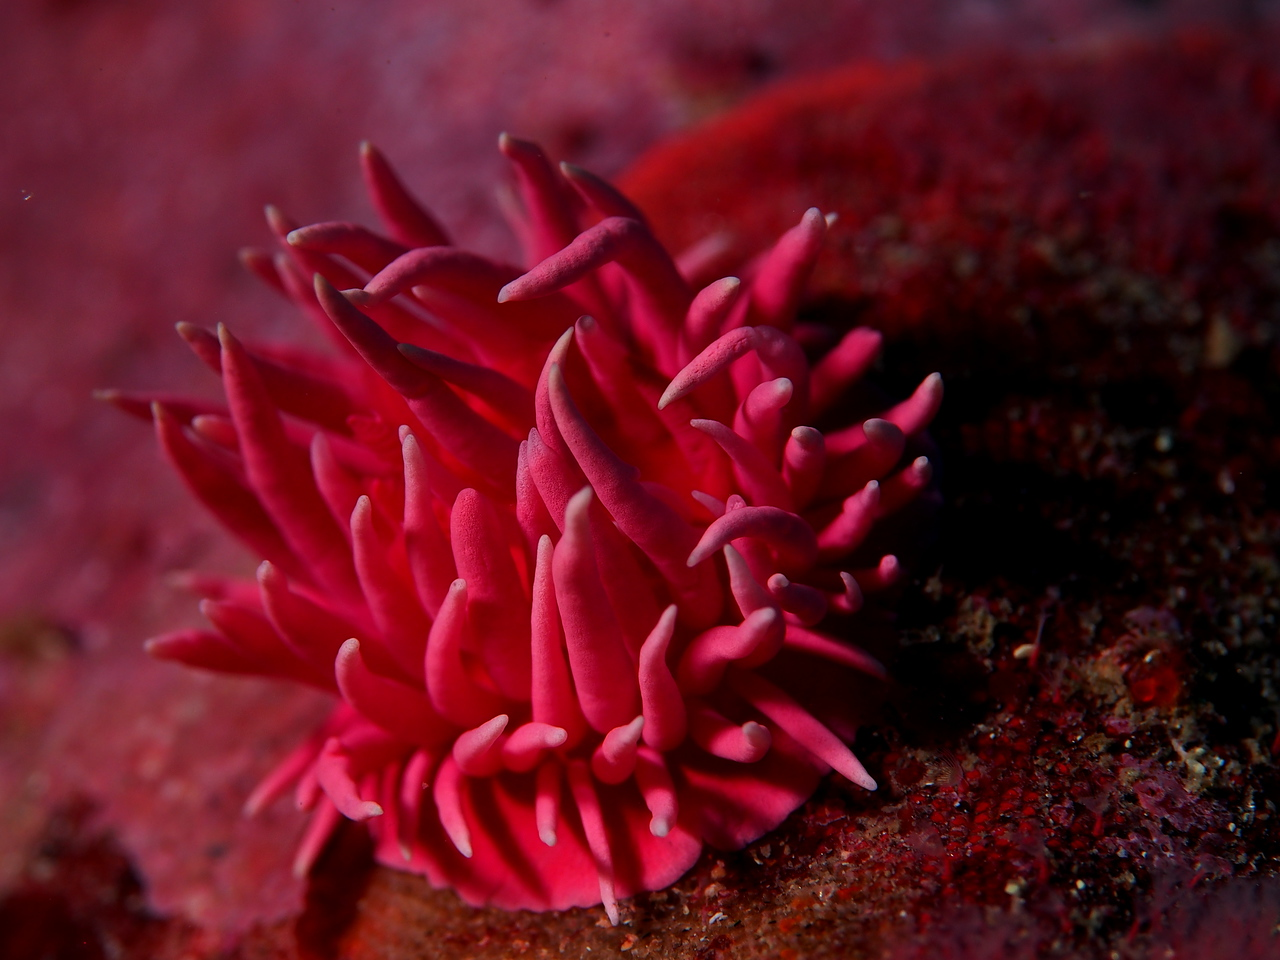 Hopkin's Rose Nudibranch